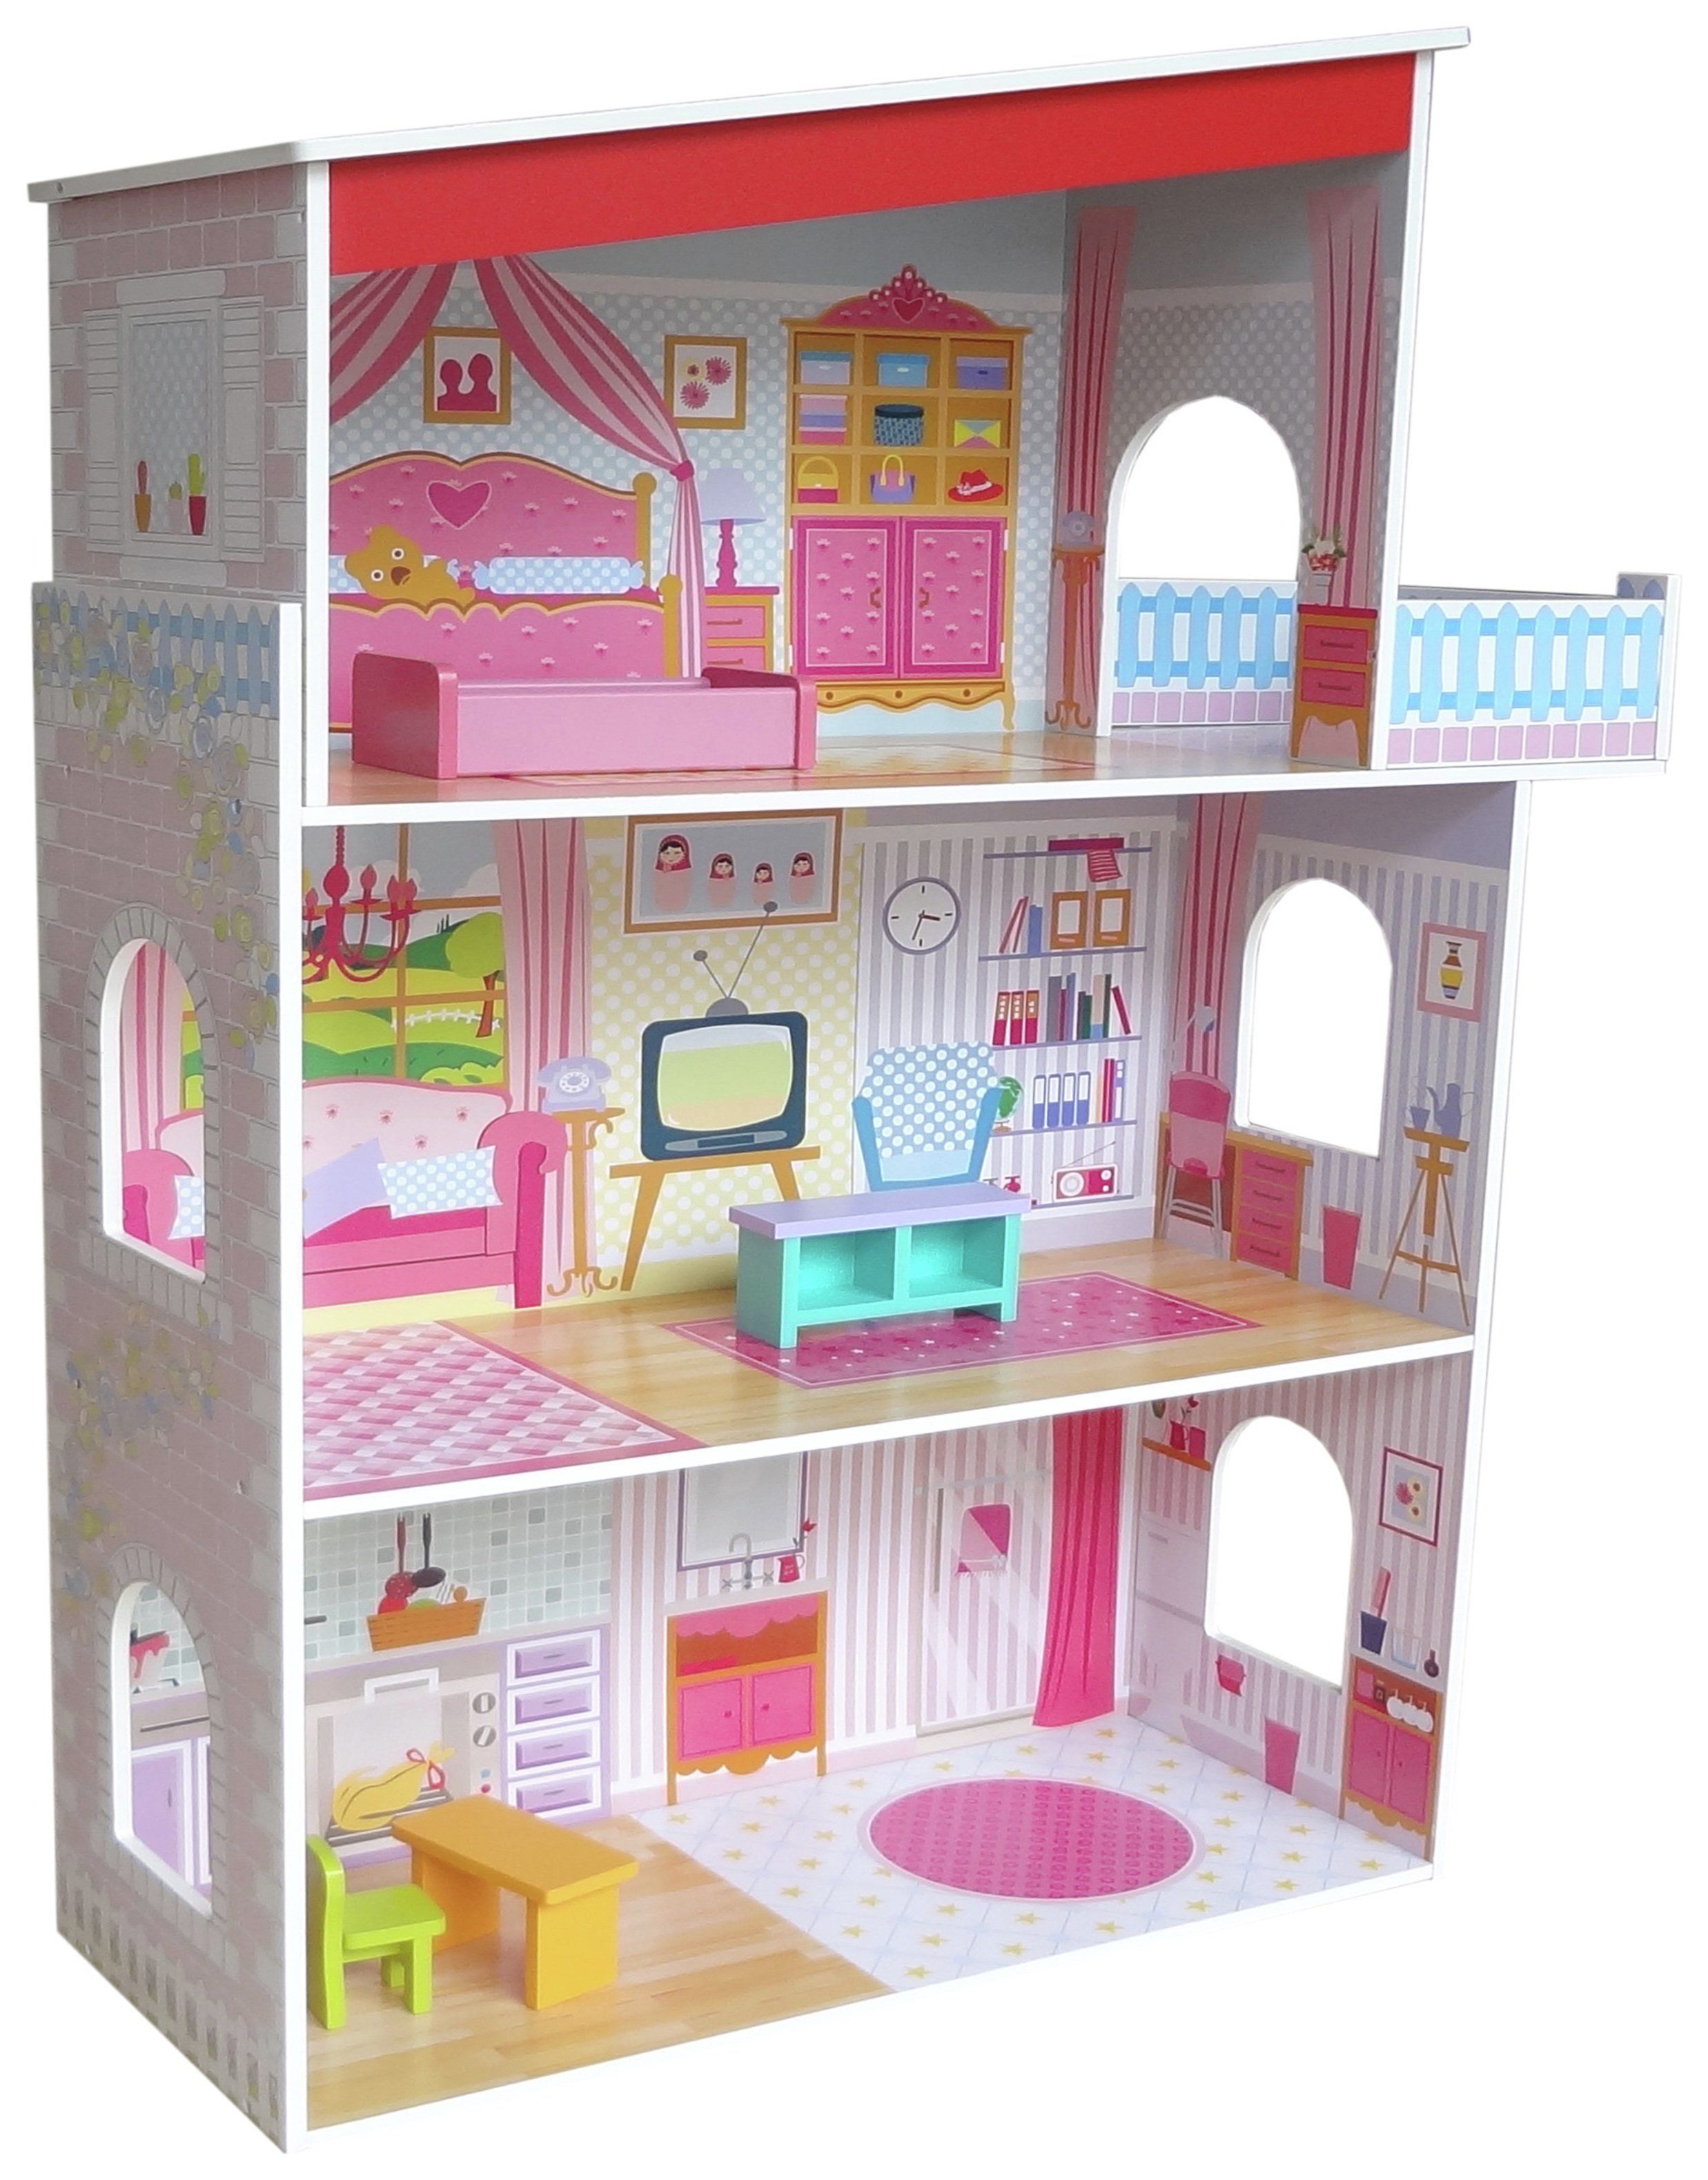 Kiddi Style Three Storey Wooden Mansion Dolls House review